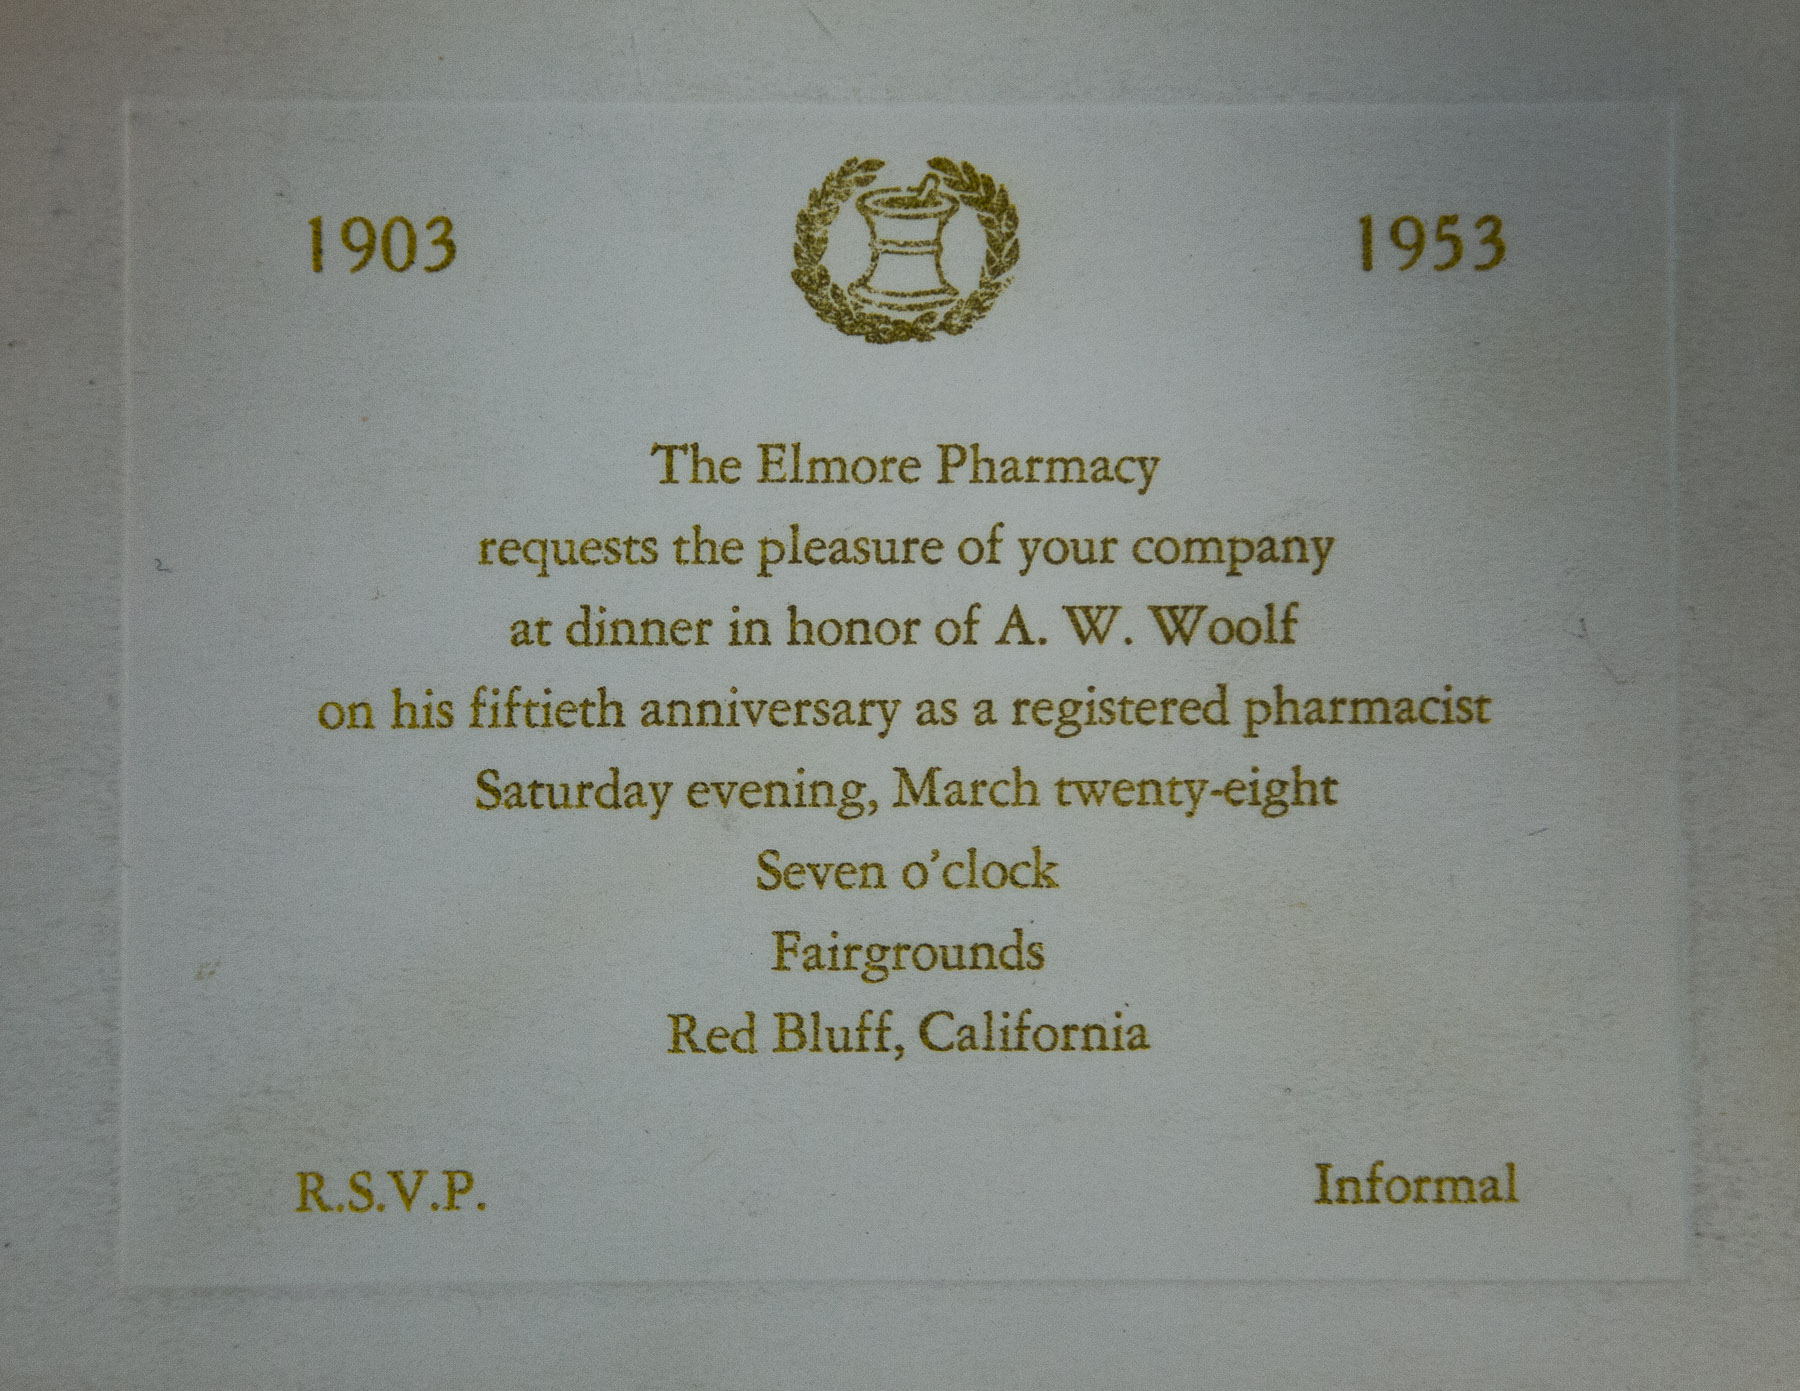 1953 Elmore Pharmacy A. W. Woolf 50th Anniversary as a Pharmacist